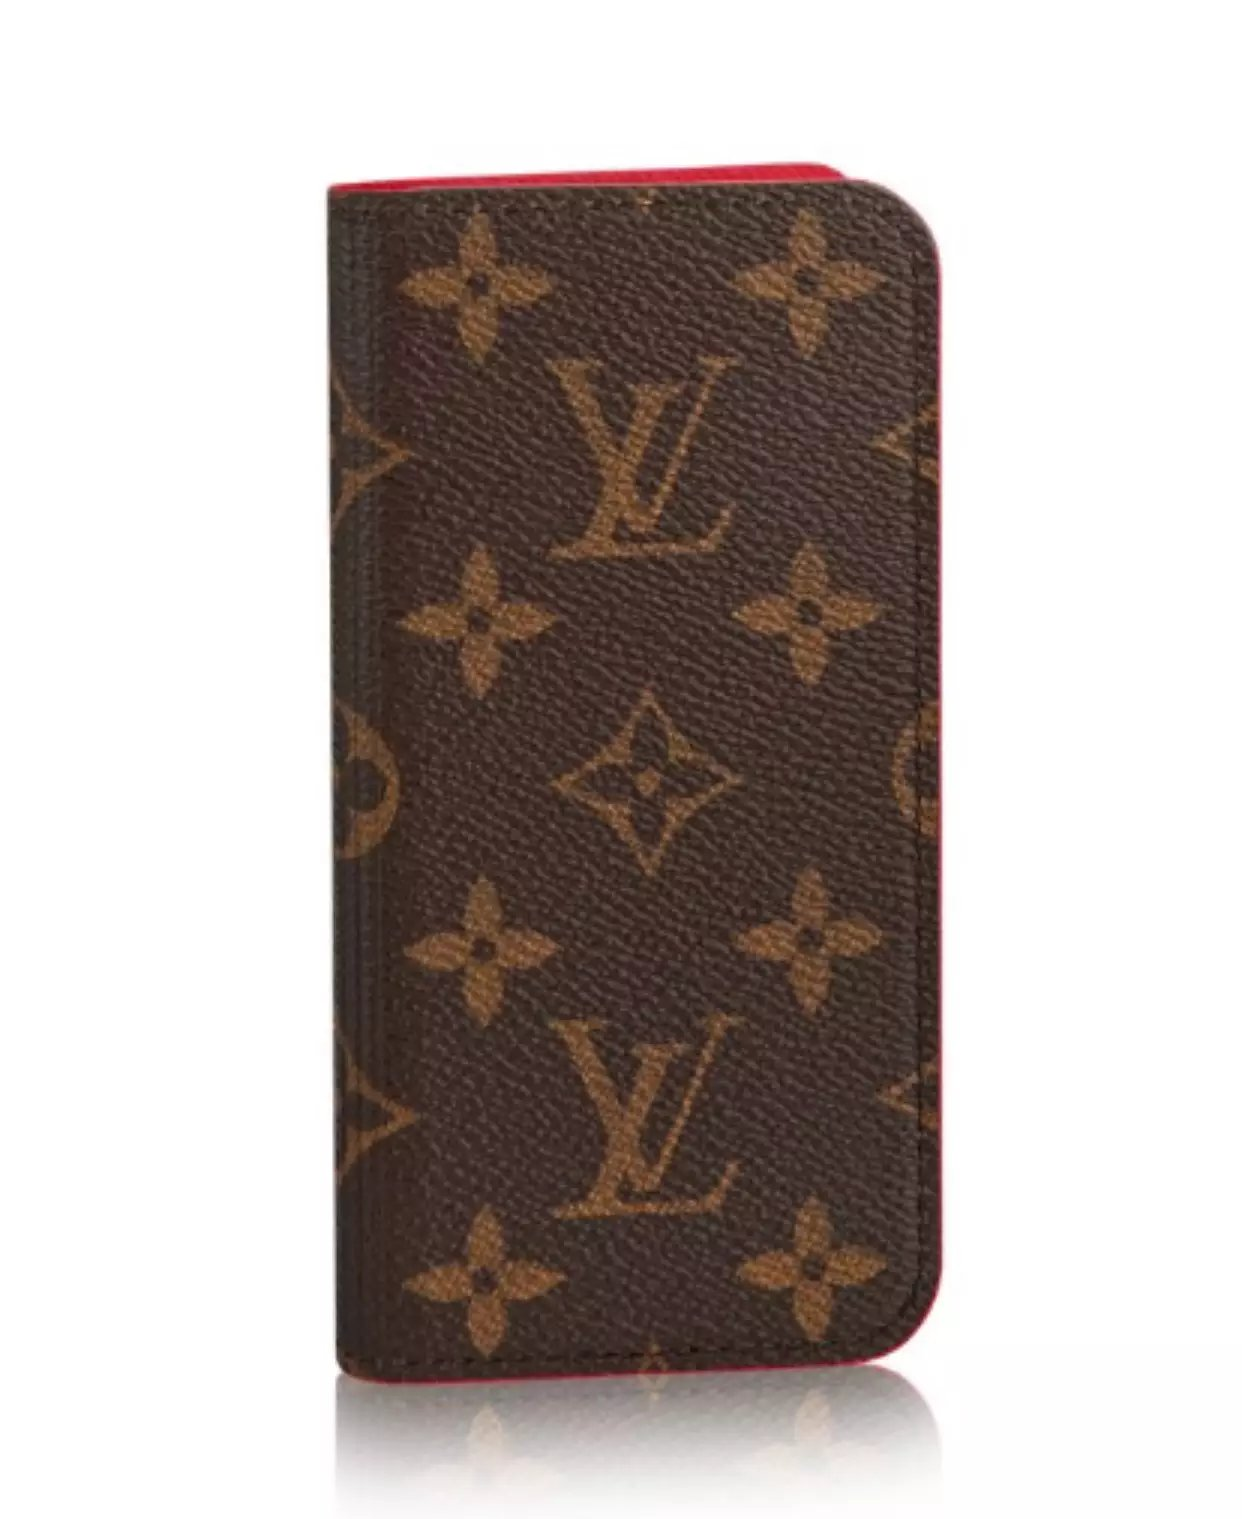 iphone hülle selbst iphone hülle selber machen Louis Vuitton iphone 8 hüllen iphone8 hülle handyhülle 8lbst bedrucken personalisierte iphone 8 hülle iphone 8 design hülle iphone 8 ca8 8lber gestalten leder iphone hülle